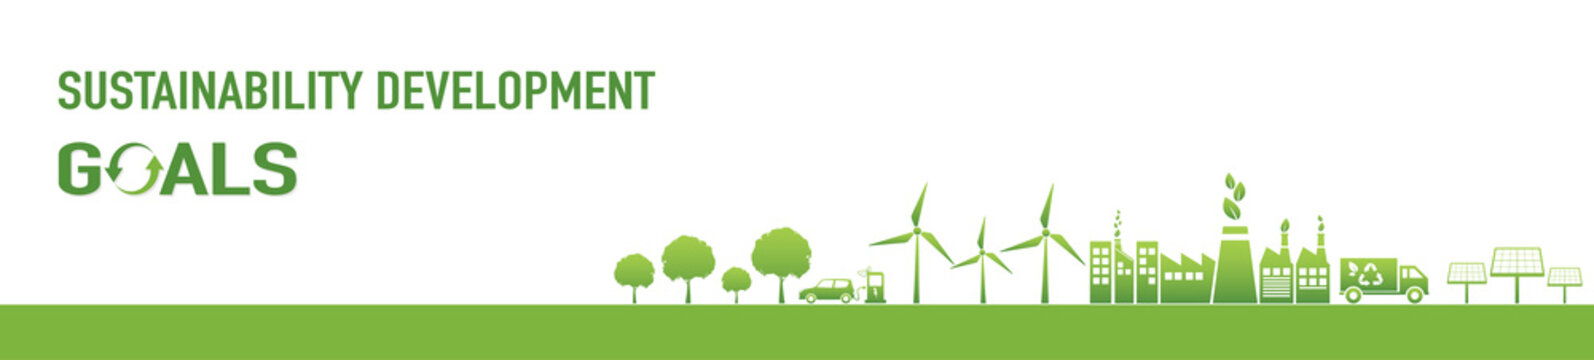 Sustainability development goals and Green Industries Business concept banner